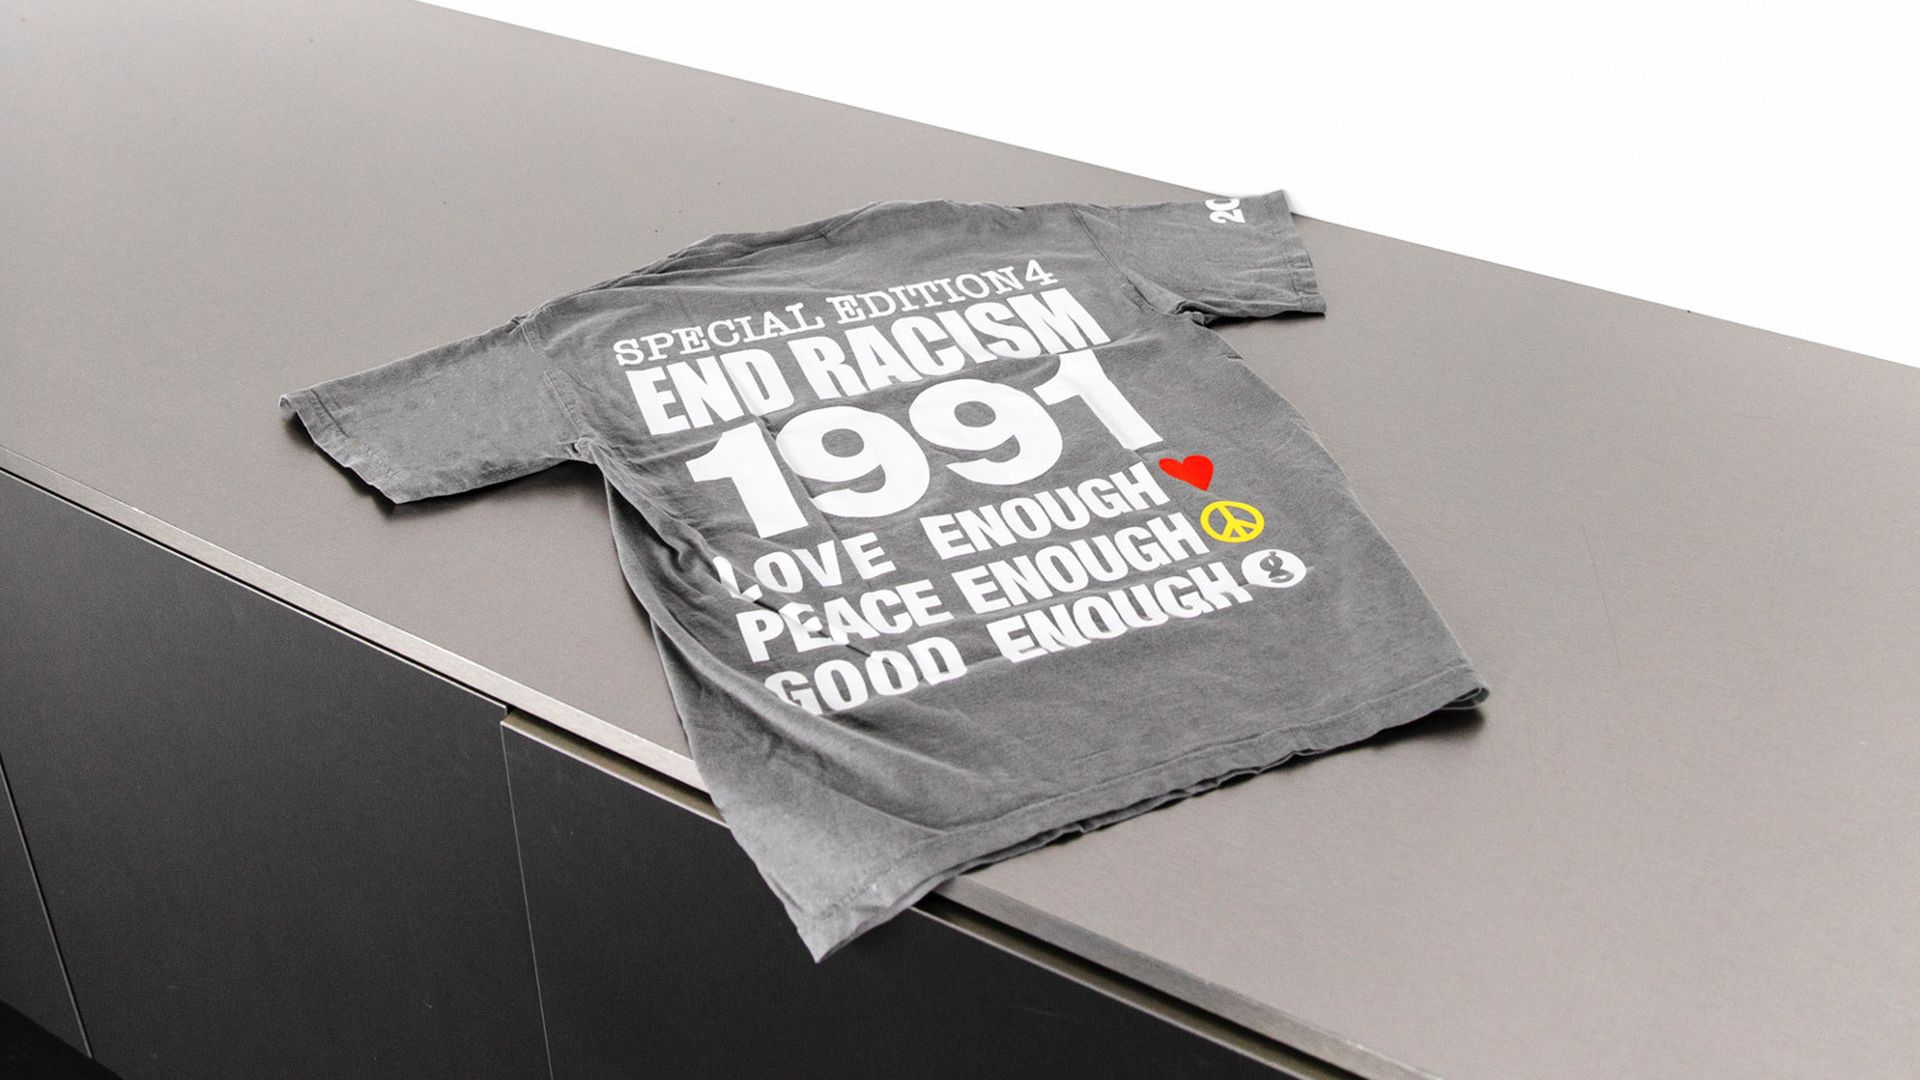 INFINITE ARCHIVES - END RACISM TEE - carousel slide